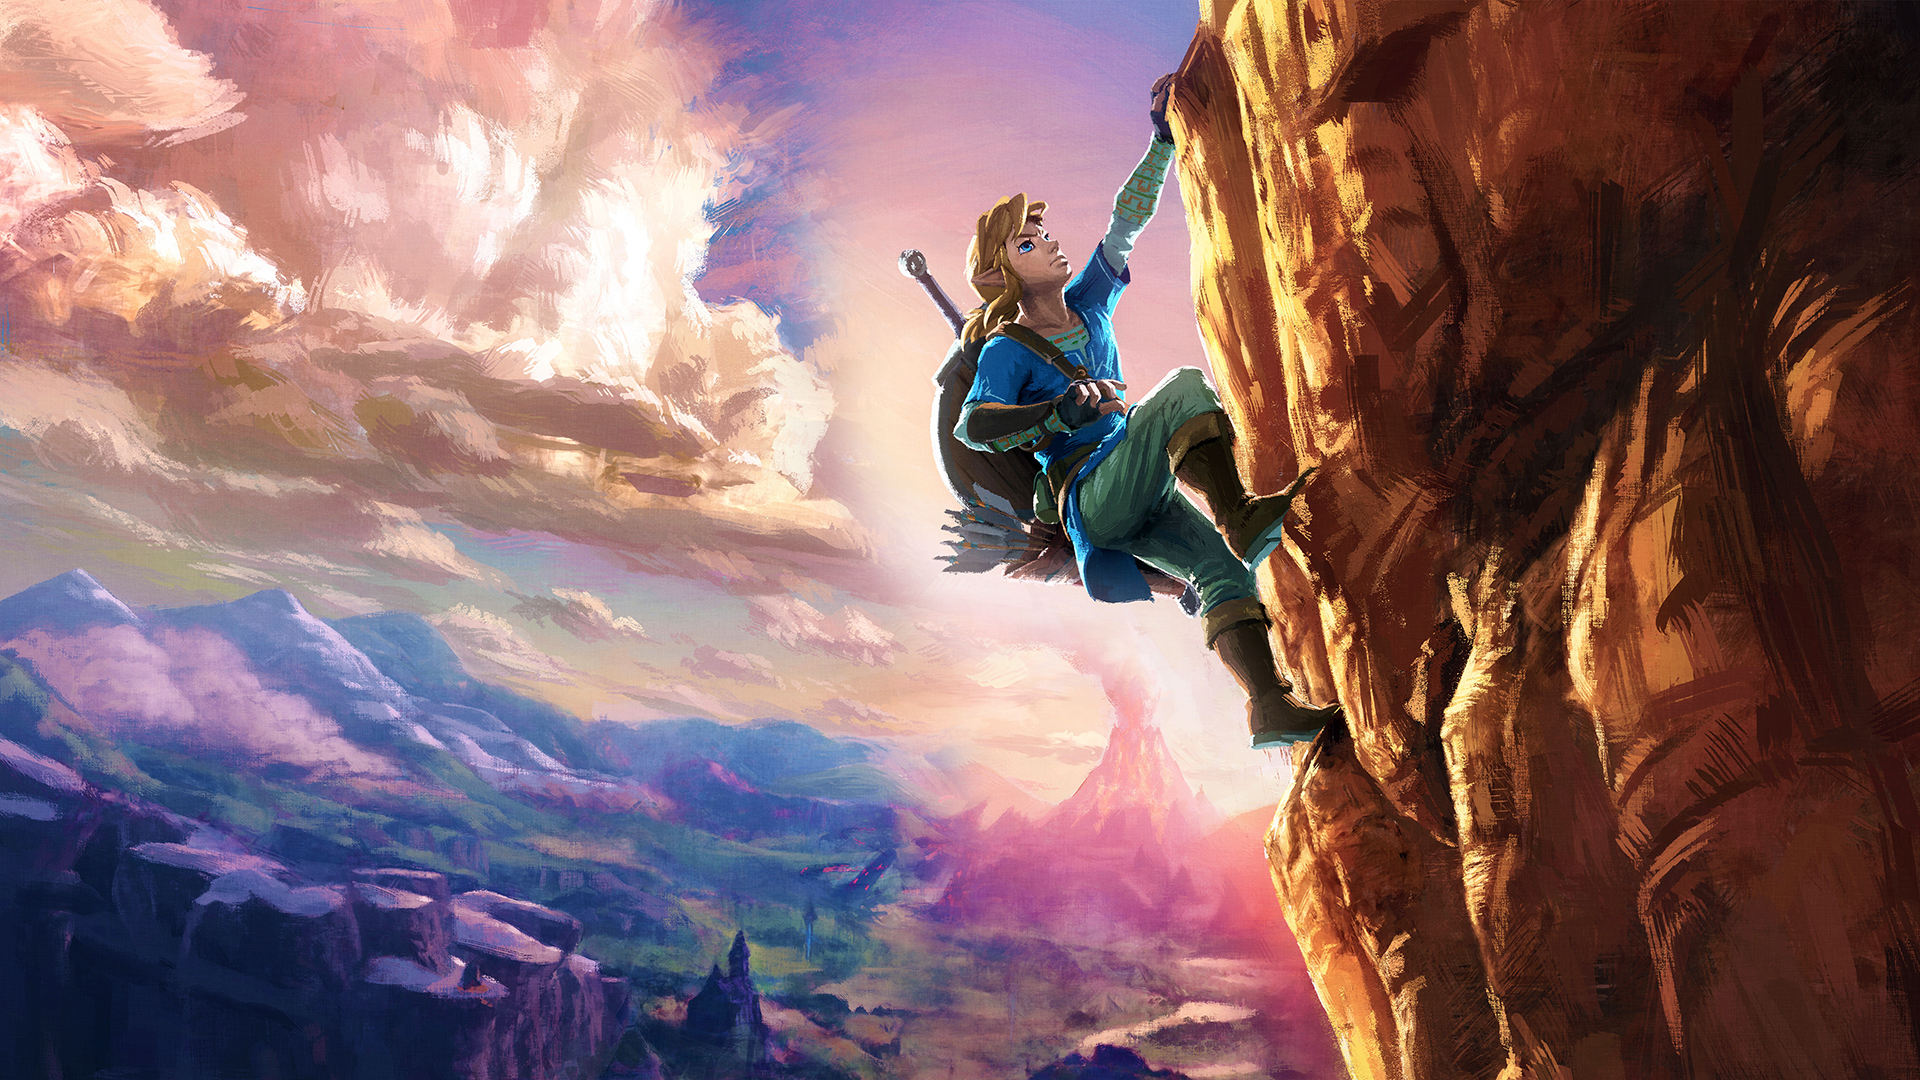 Zelda Breath Of The Wild Screensaver Posted By John Johnson